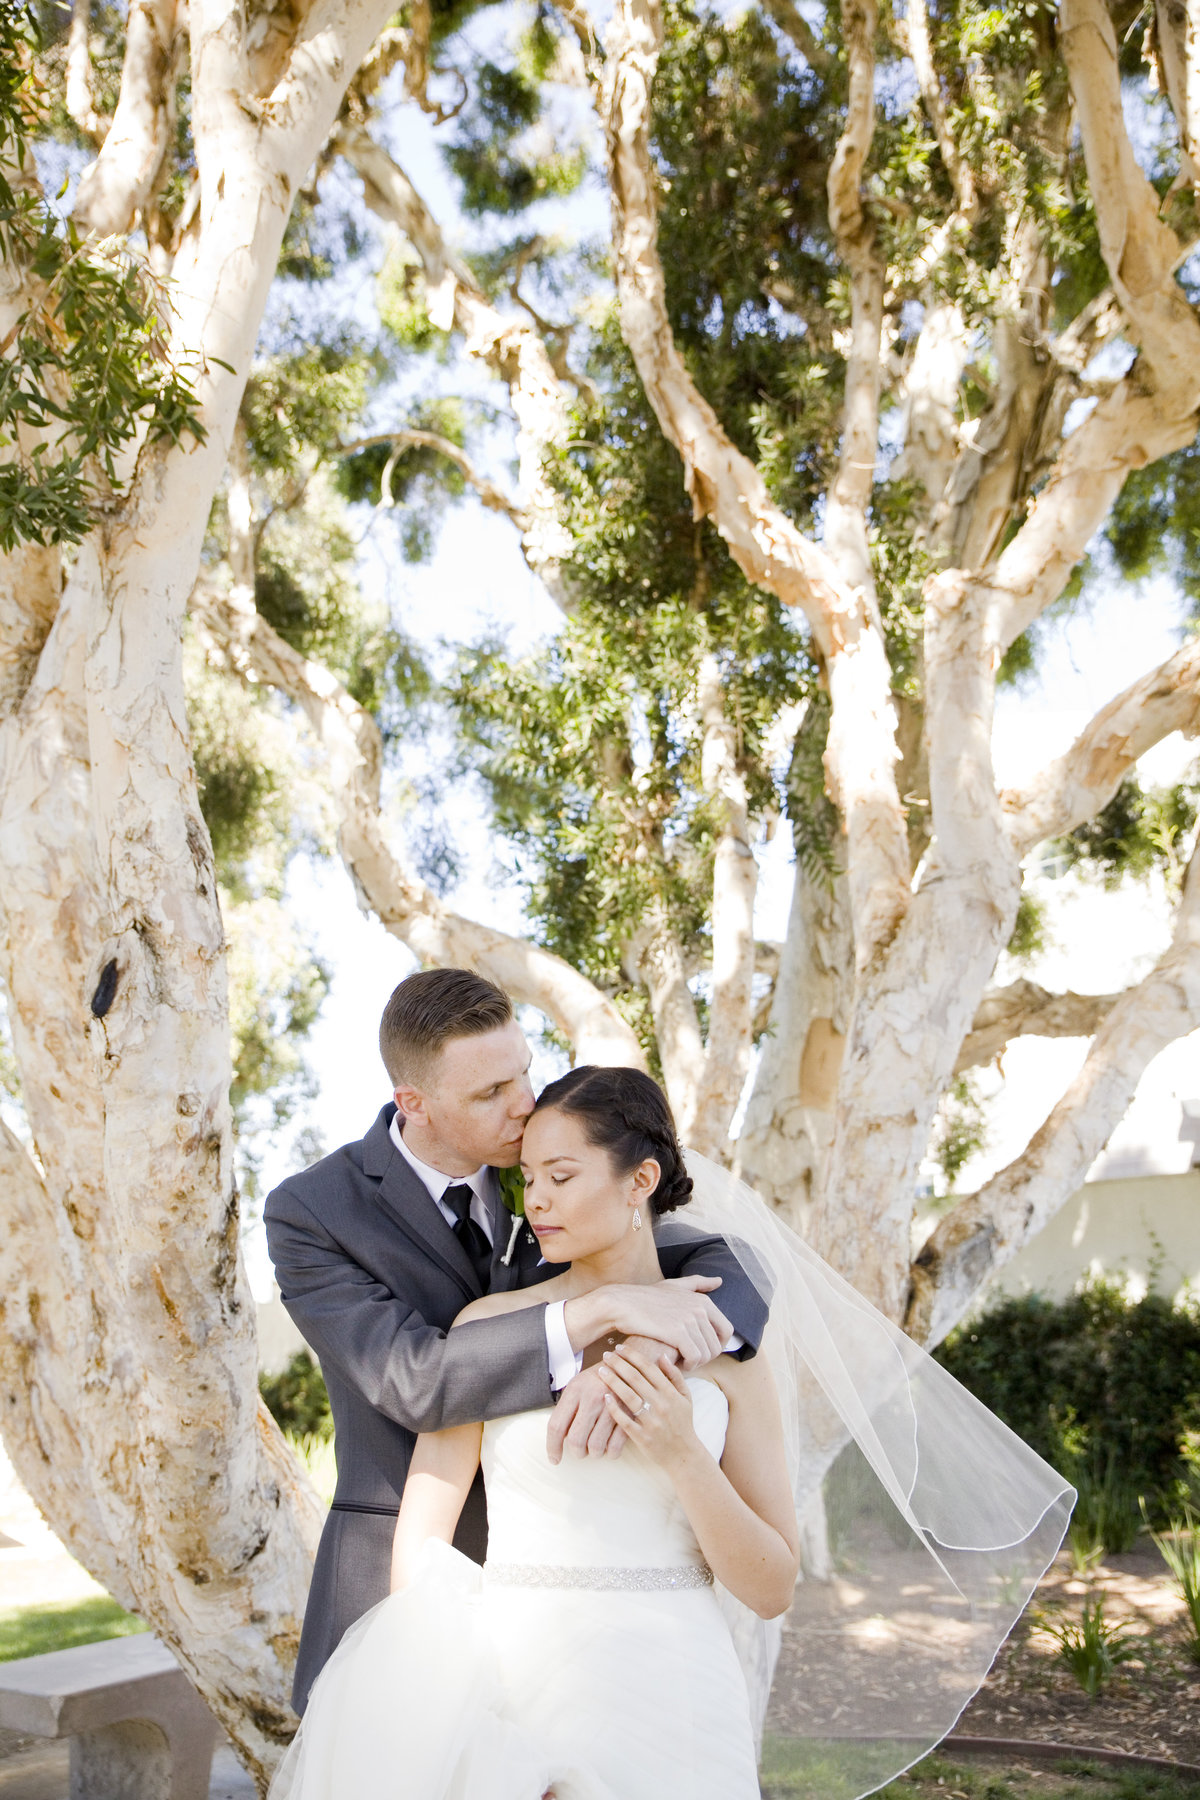 Katherine_beth_photography_San_diego_wedding_photographer_san_diego_wedding_coronado_wedding_001